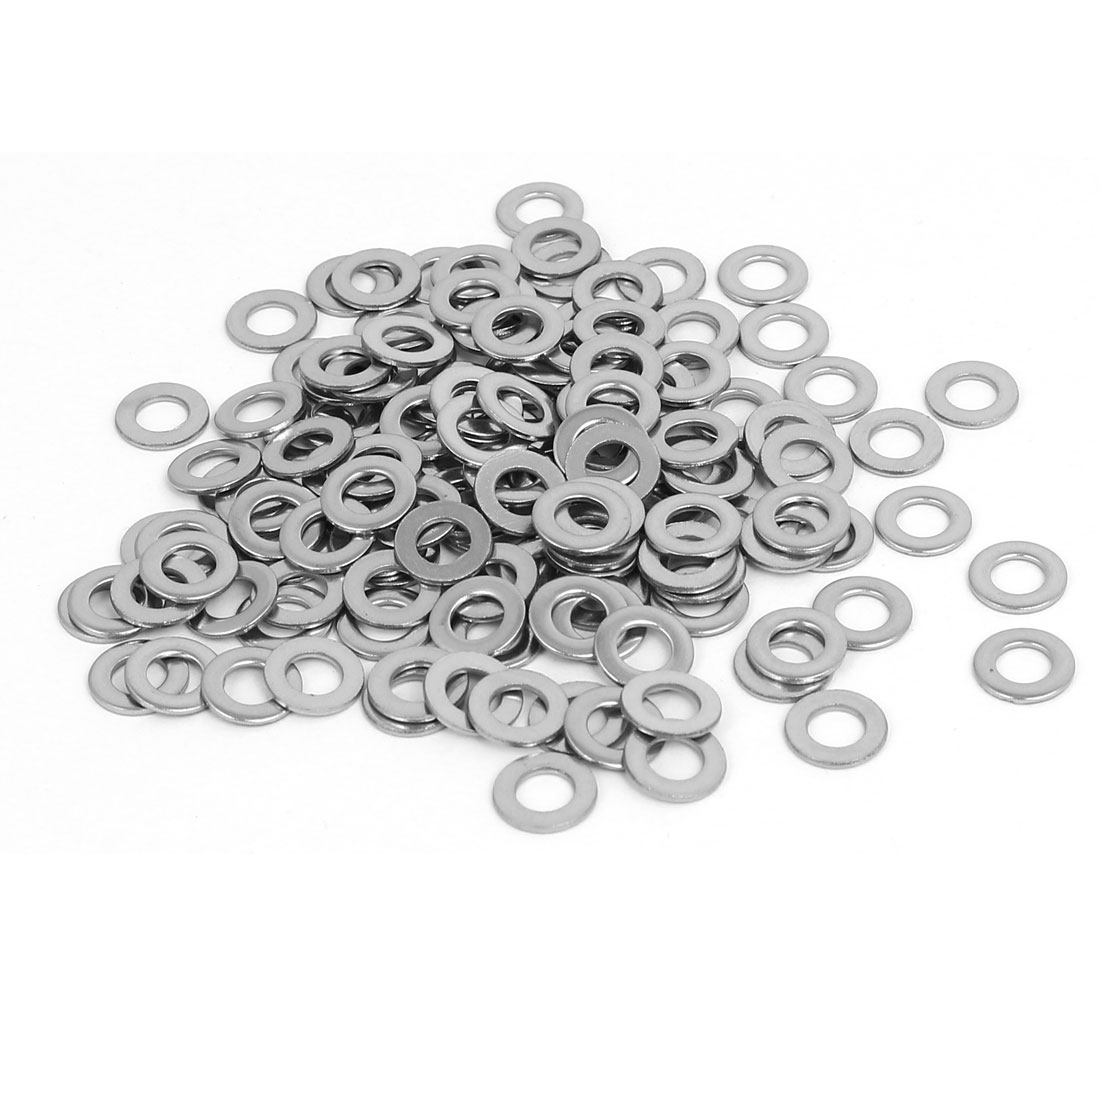 M5 304 Stainless Steel Flat Washers Gaskets Spacers Silver Tone 200PCS